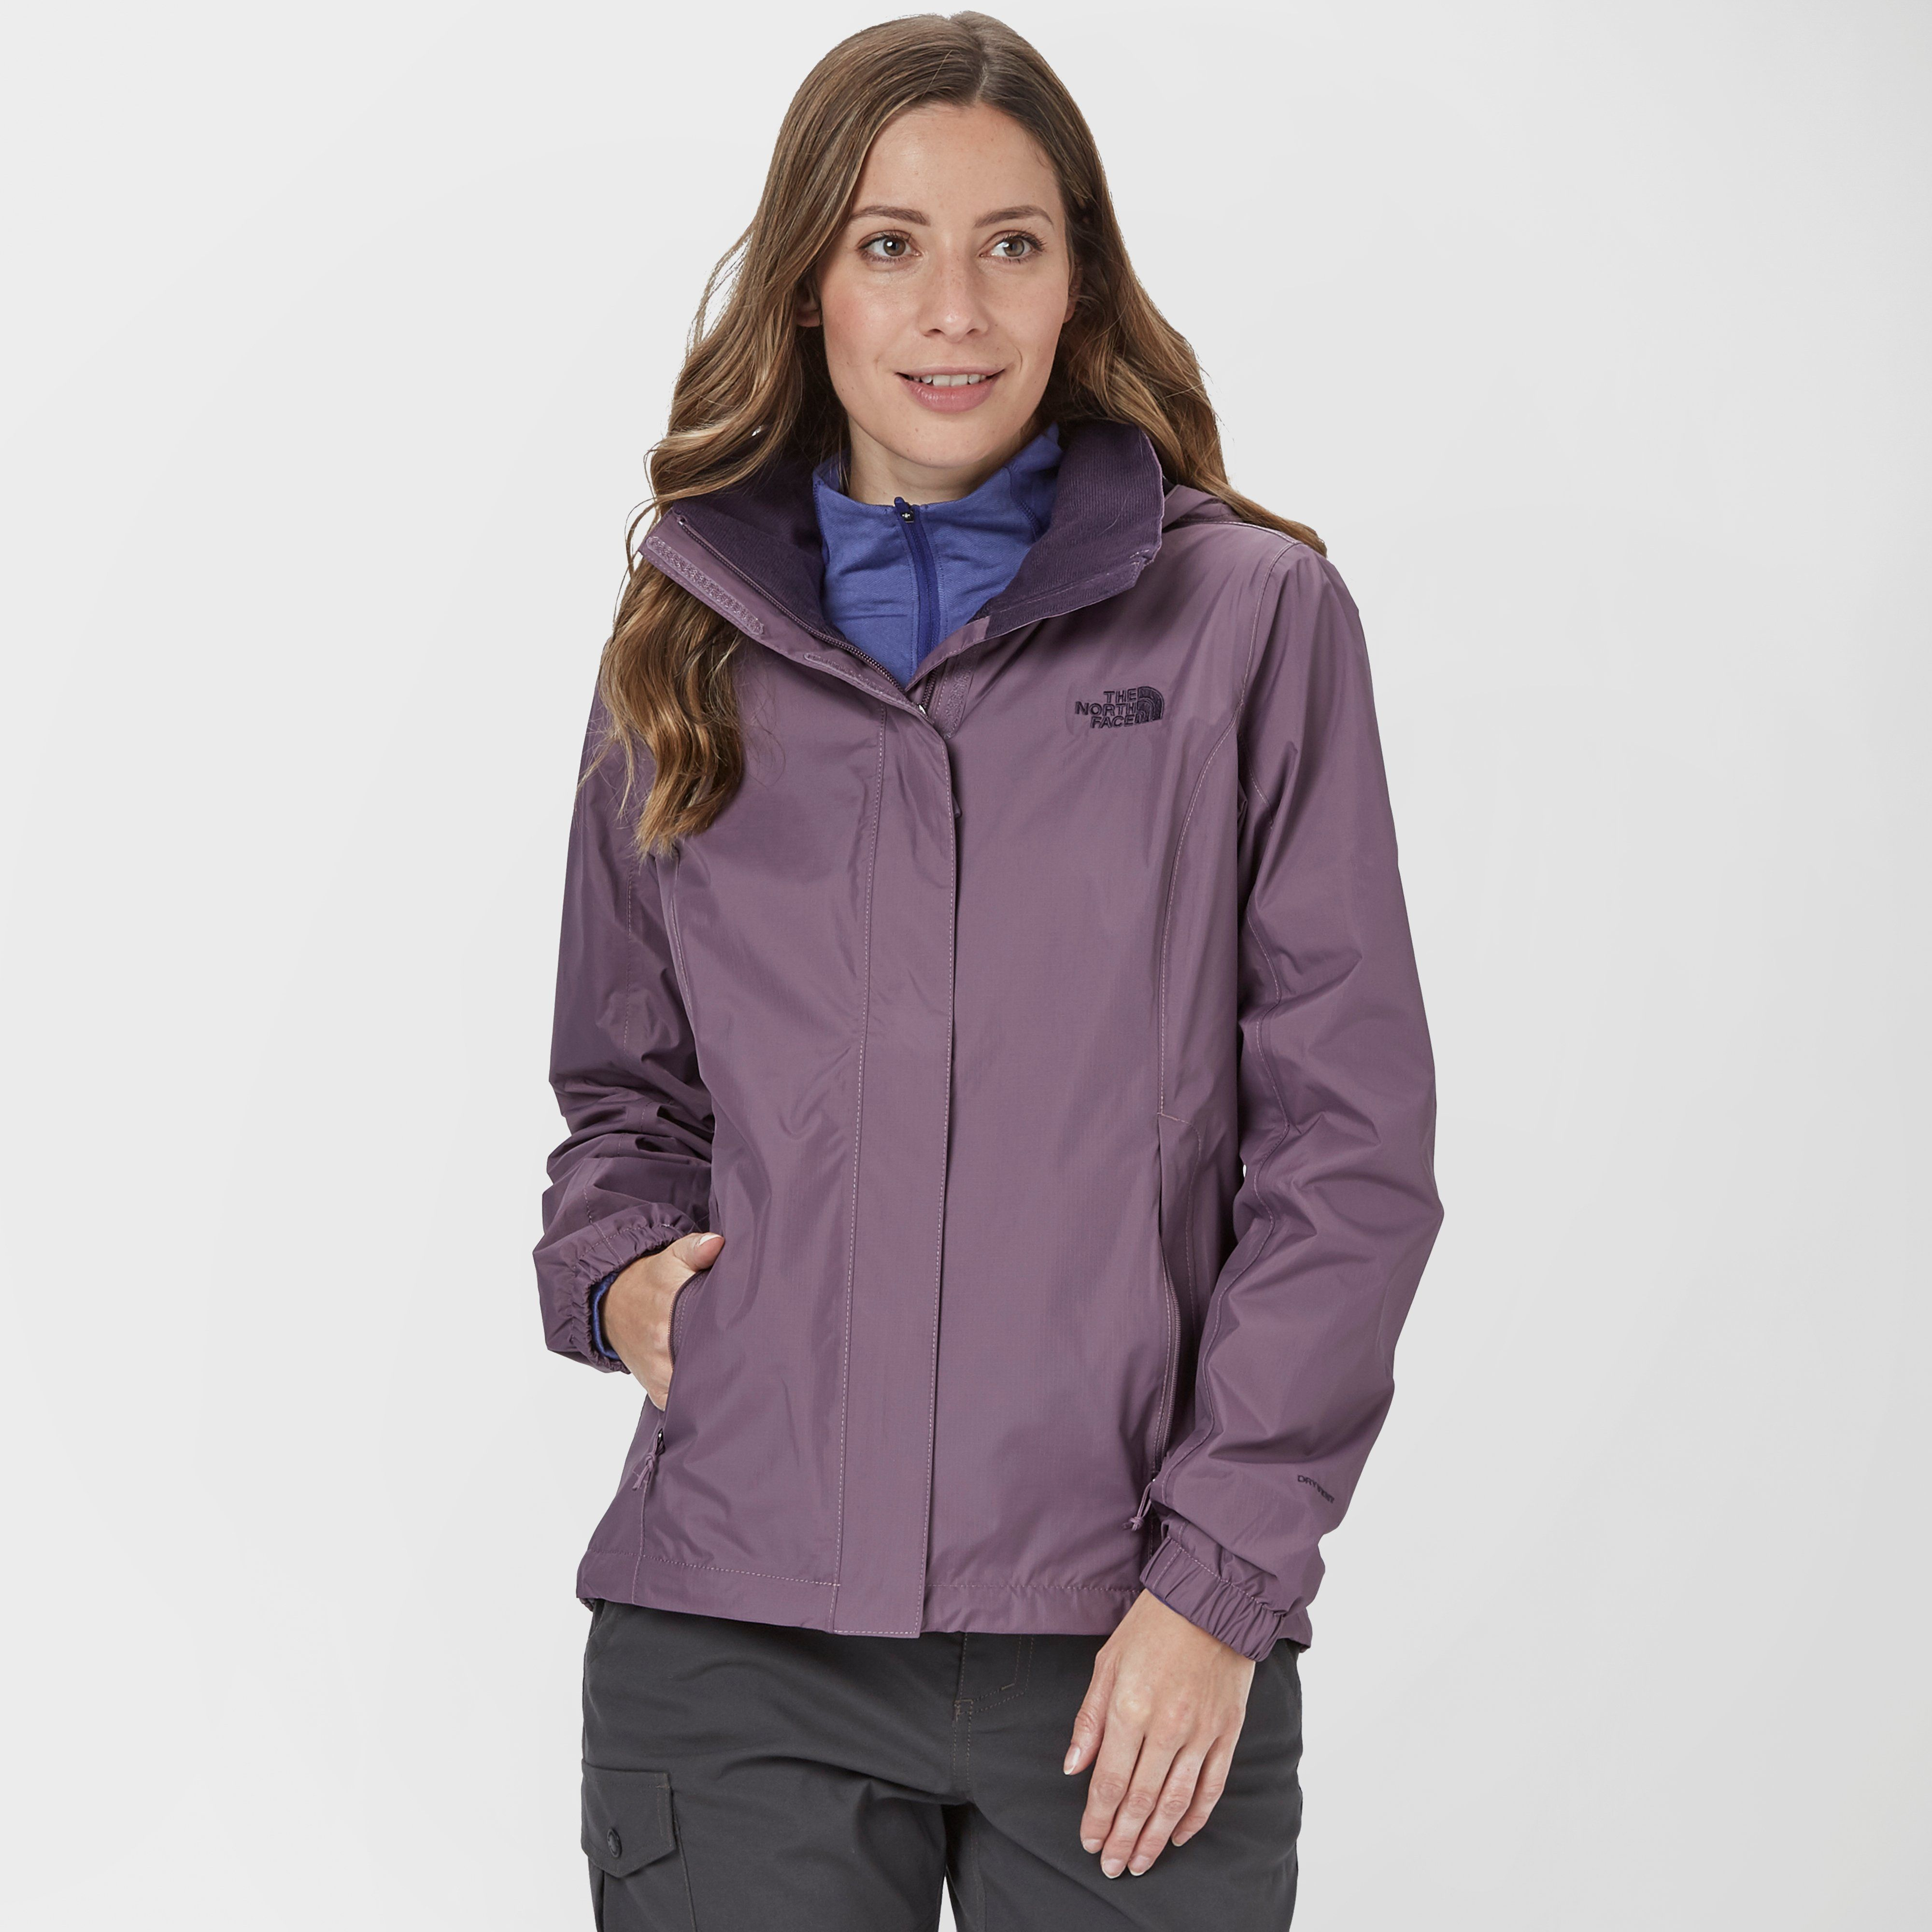 THE NORTH FACE Women's DryVent™ Resolve 2 Jacket